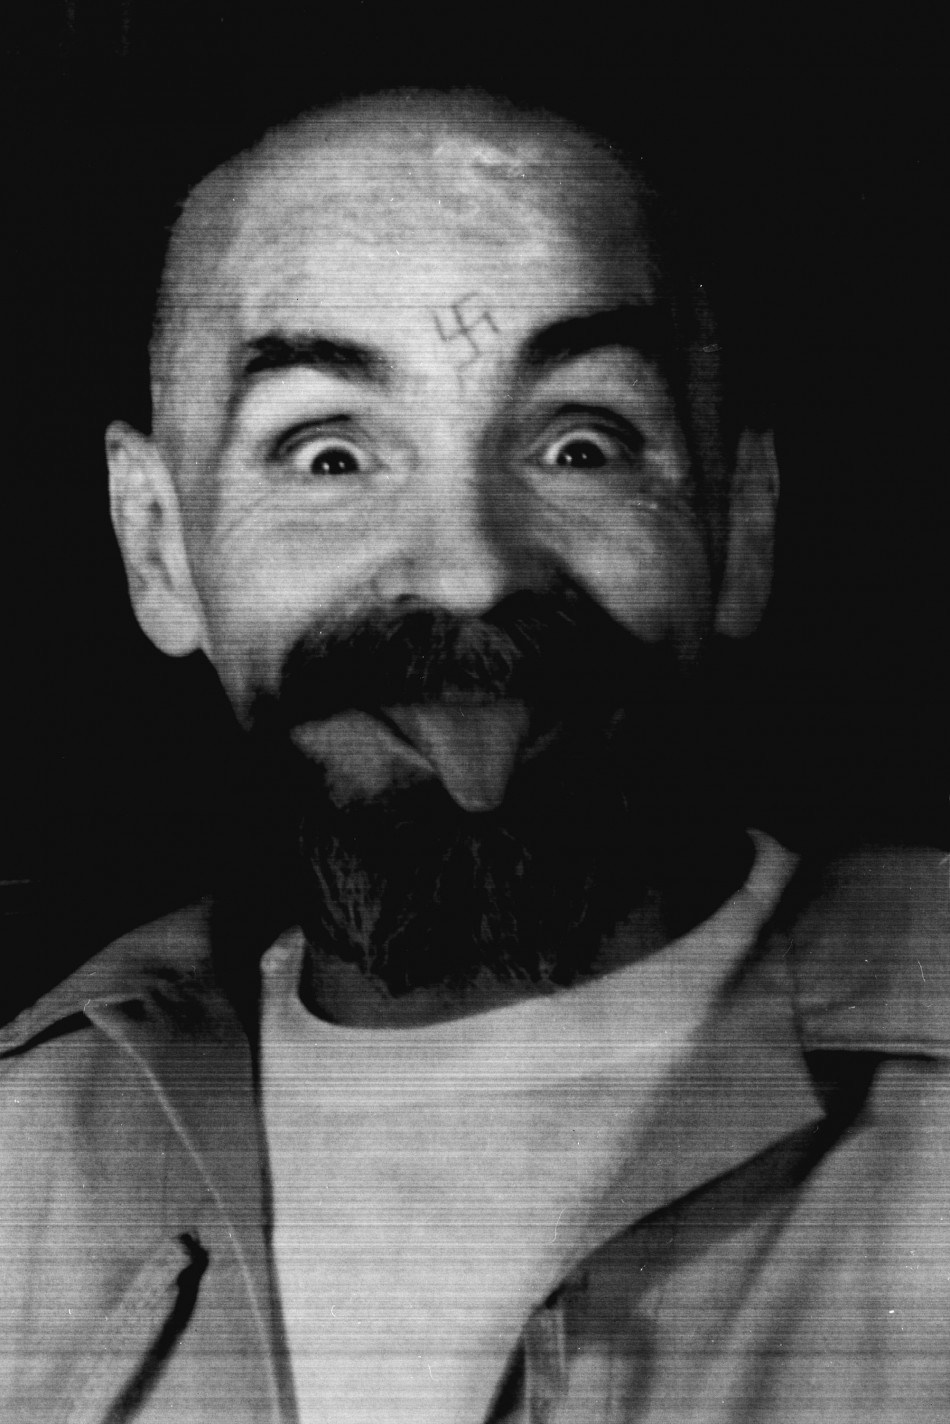 a biography of charles manson one of the most sinister and evil criminals Following the recent death of charles manson - the leader of the sinister member of the family: manson most notorious criminals and life as one of.